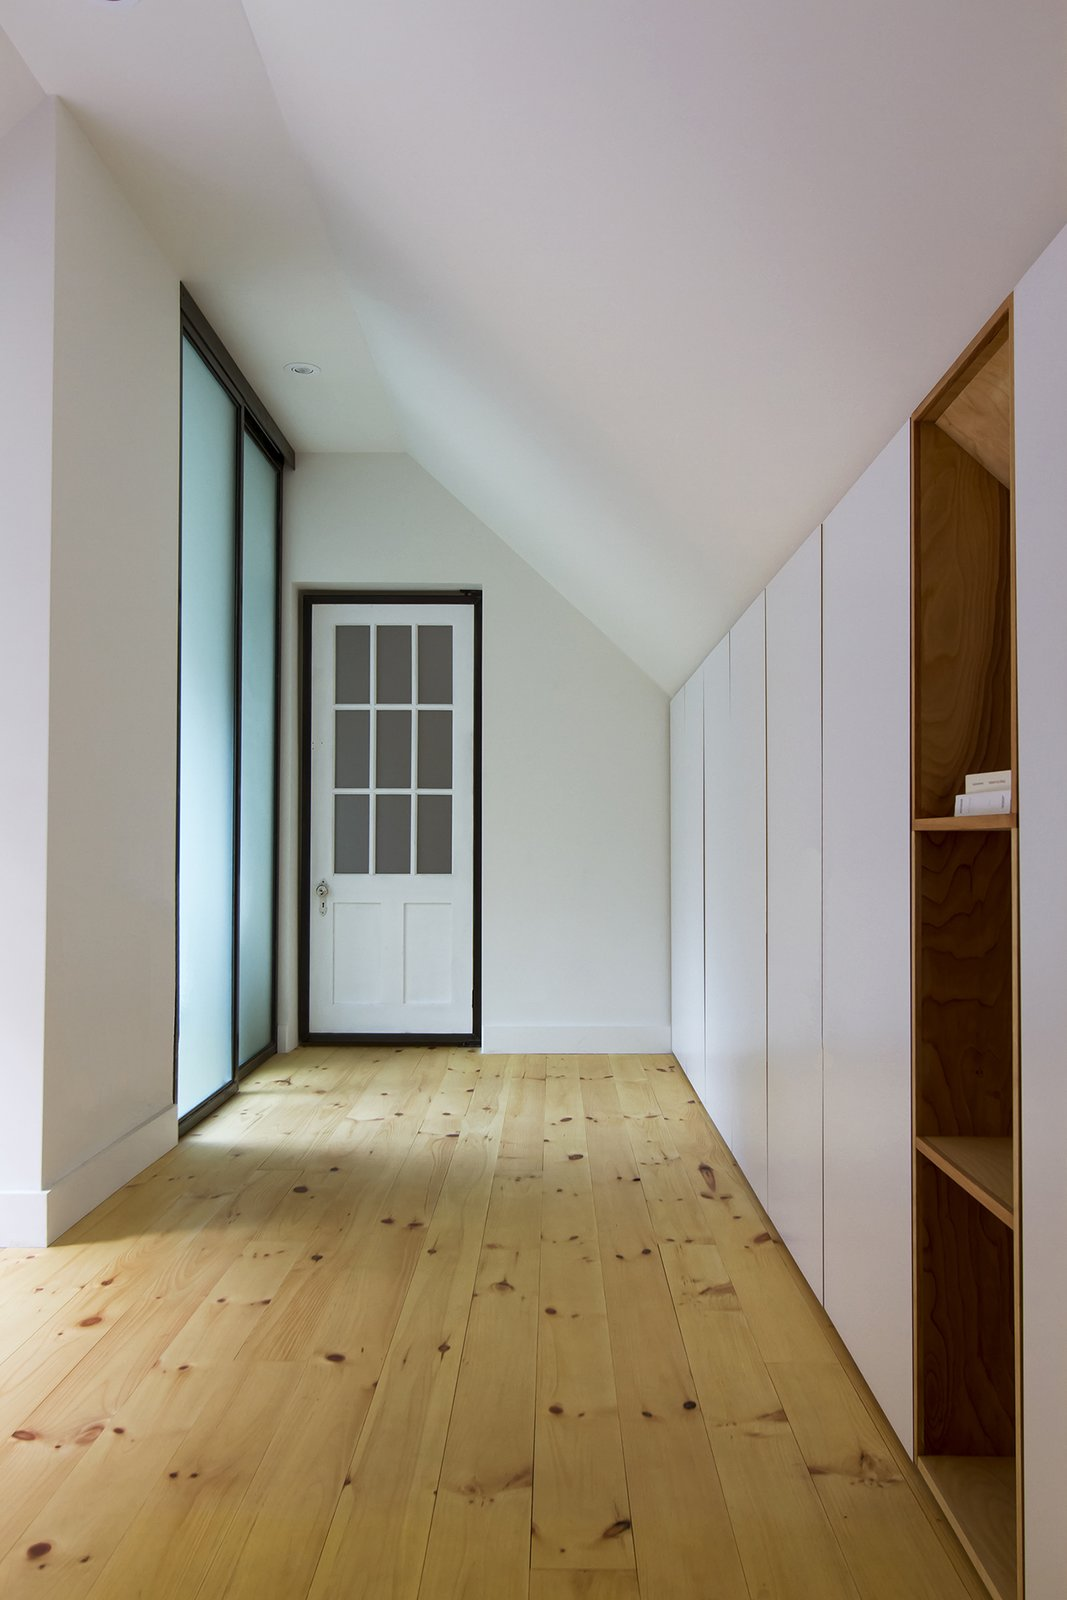 Bedroom, Wardrobe, Shelves, Ceiling Lighting, and Light Hardwood Floor The master bedroom is equipped with built-in furniture in the lower part of the roof and with a small private bathroom.  L'Eau Vive by FÉLIX & Co.